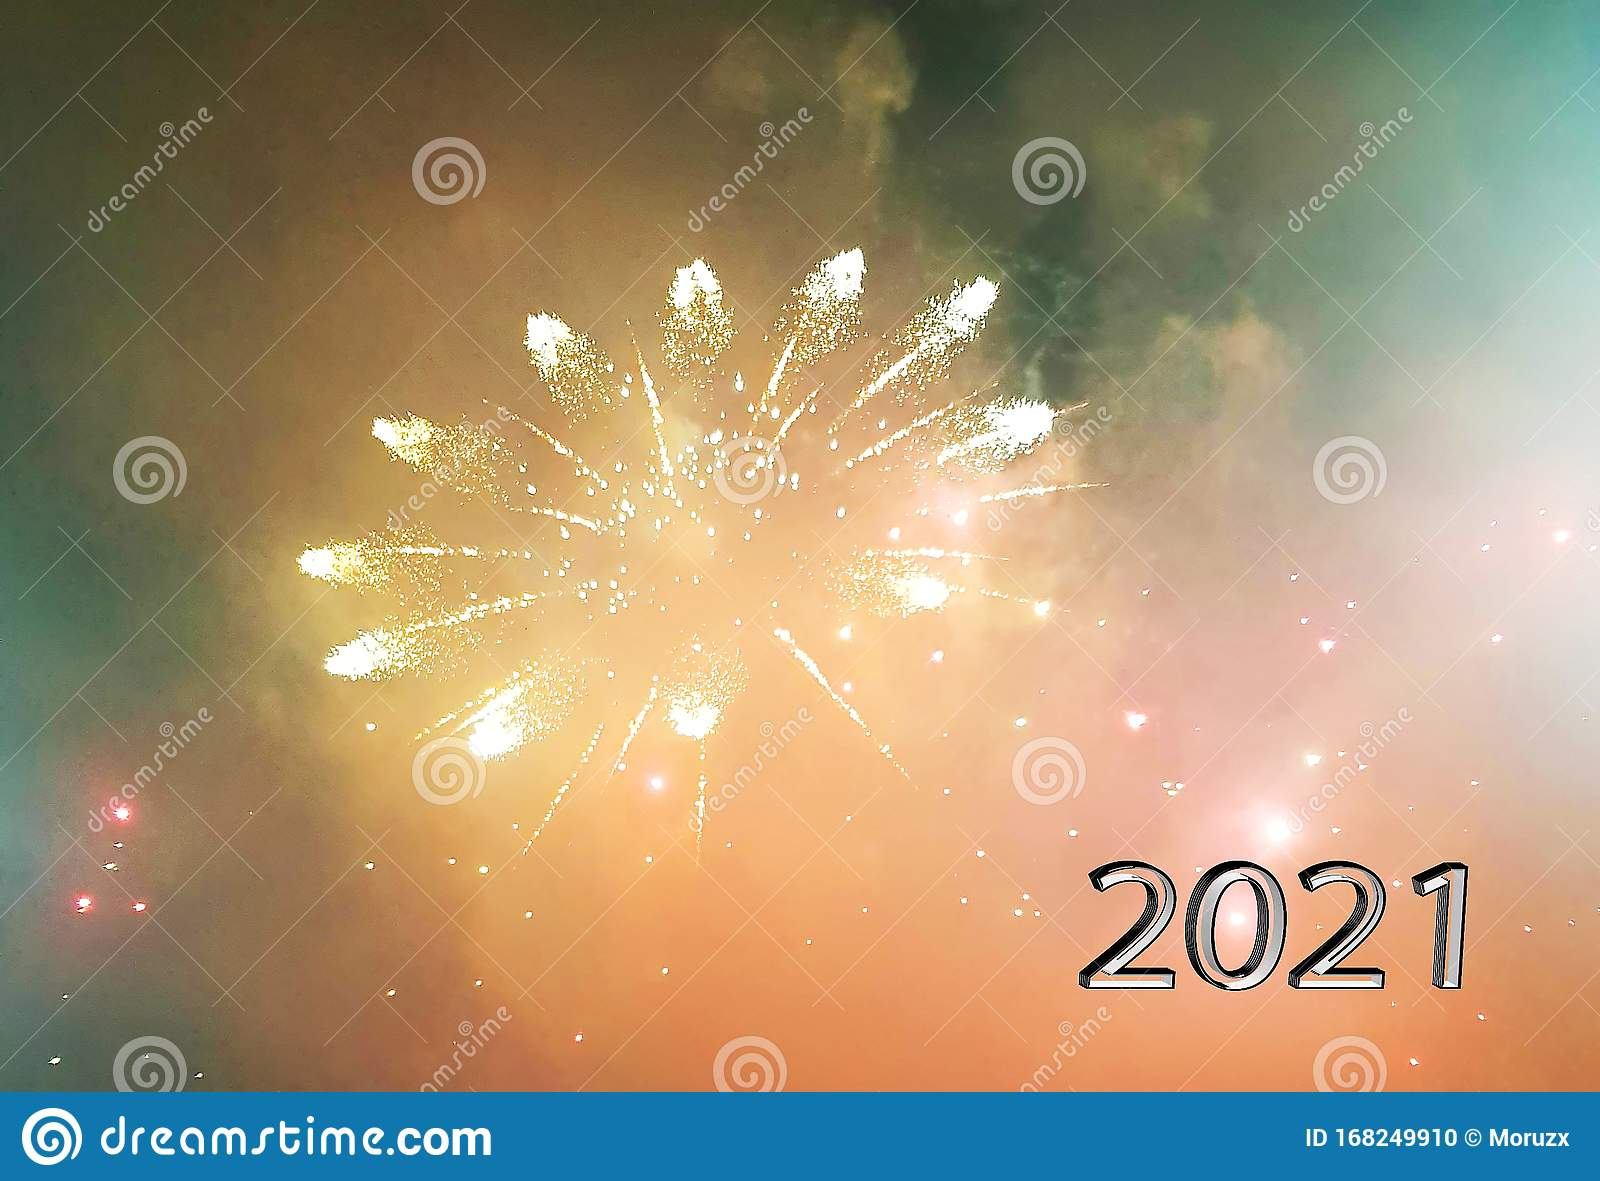 Happy New Year 2021 Fireworks Background Stock Illustration - Illustration of fireworks